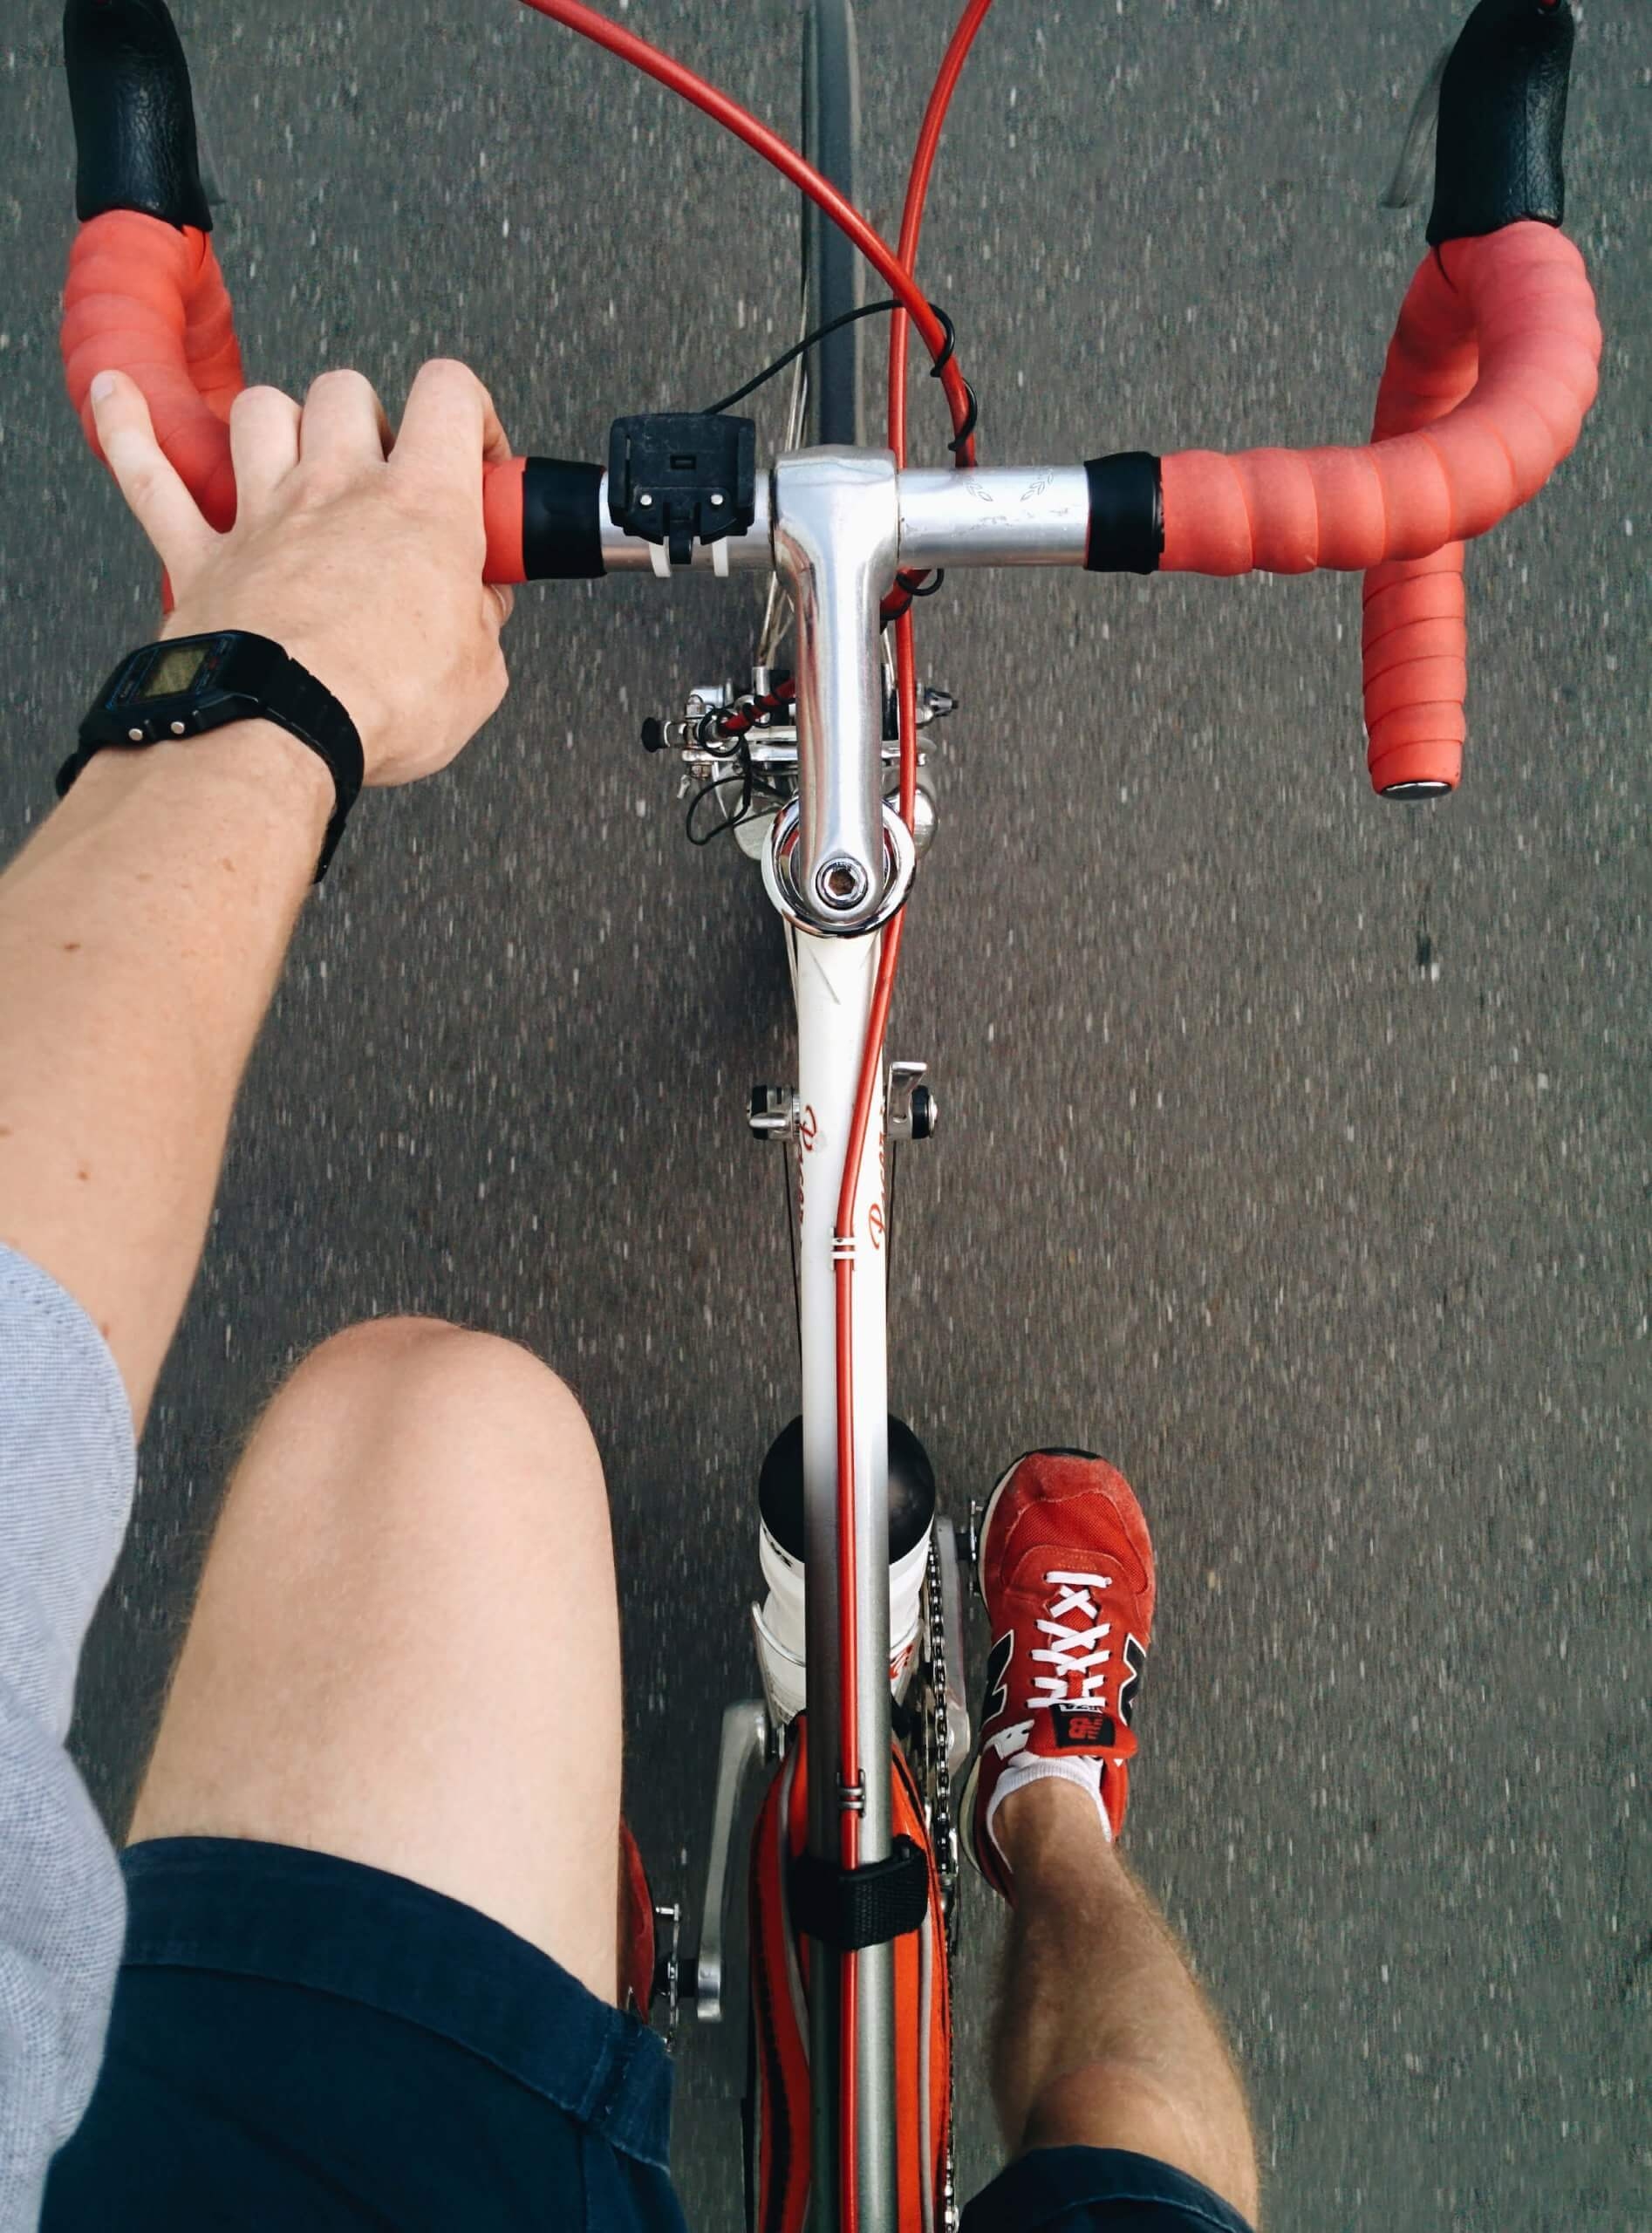 Canva-Man-Riding-on-Silver-and-Red-Road-Bike.jpg